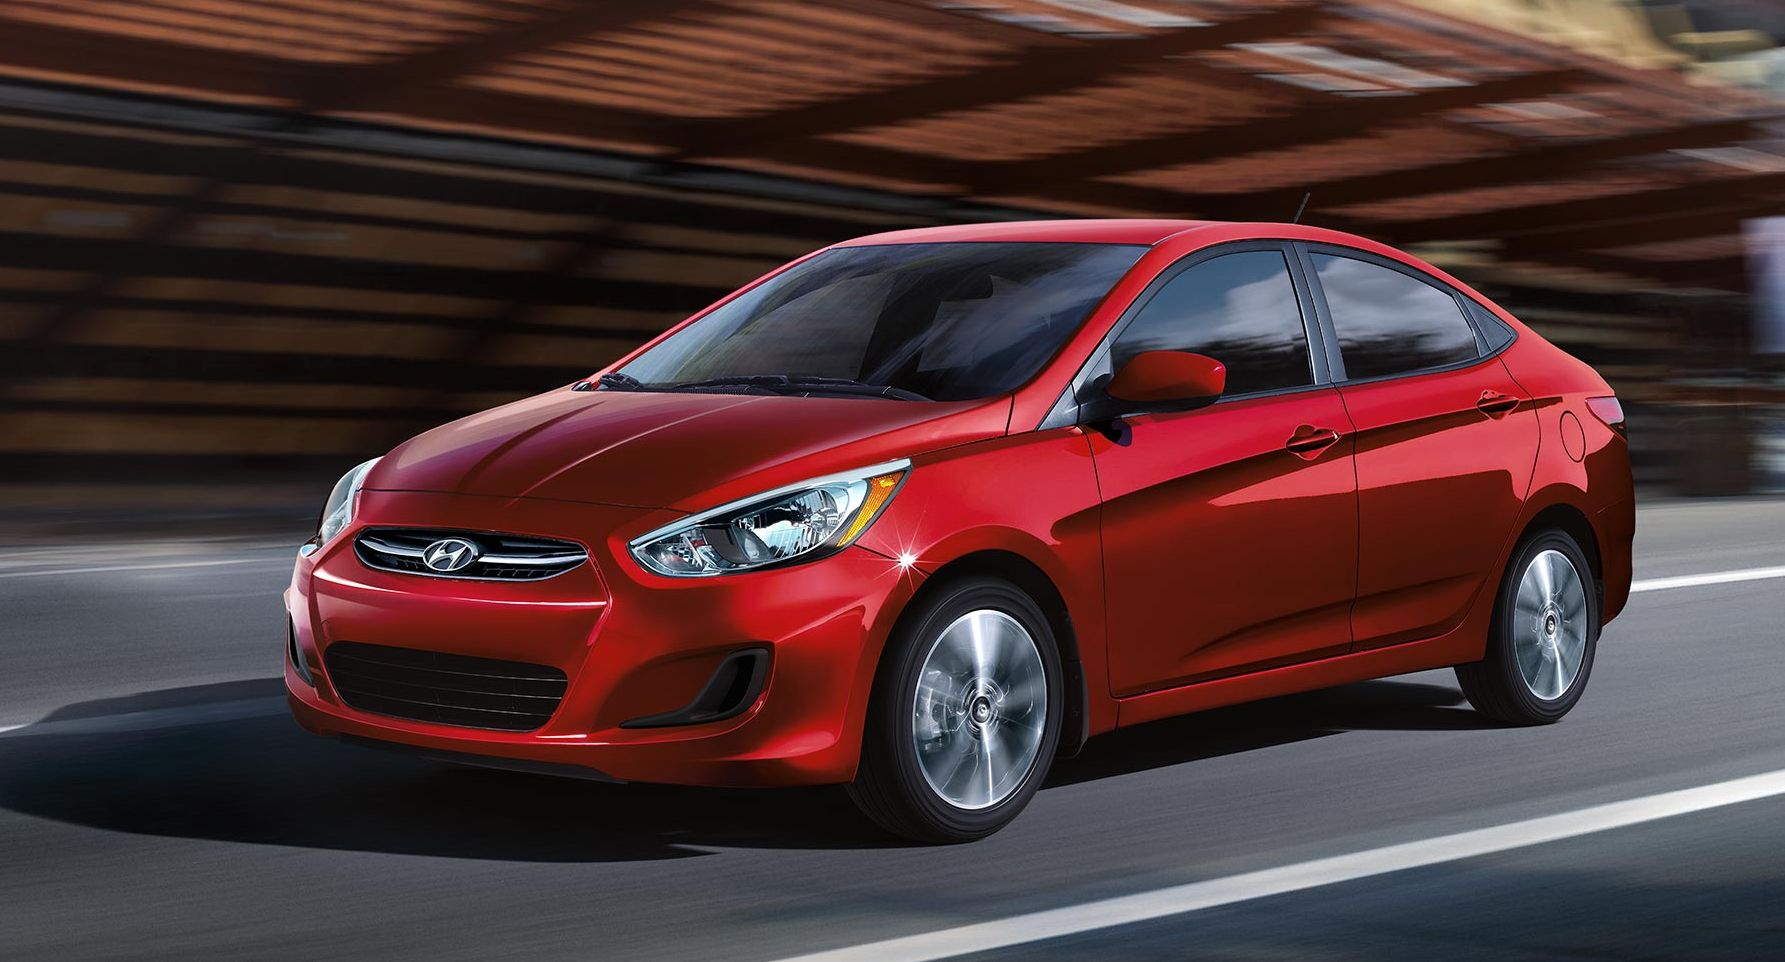 2017 Hyundai Accent Safety Features near Washington, DC